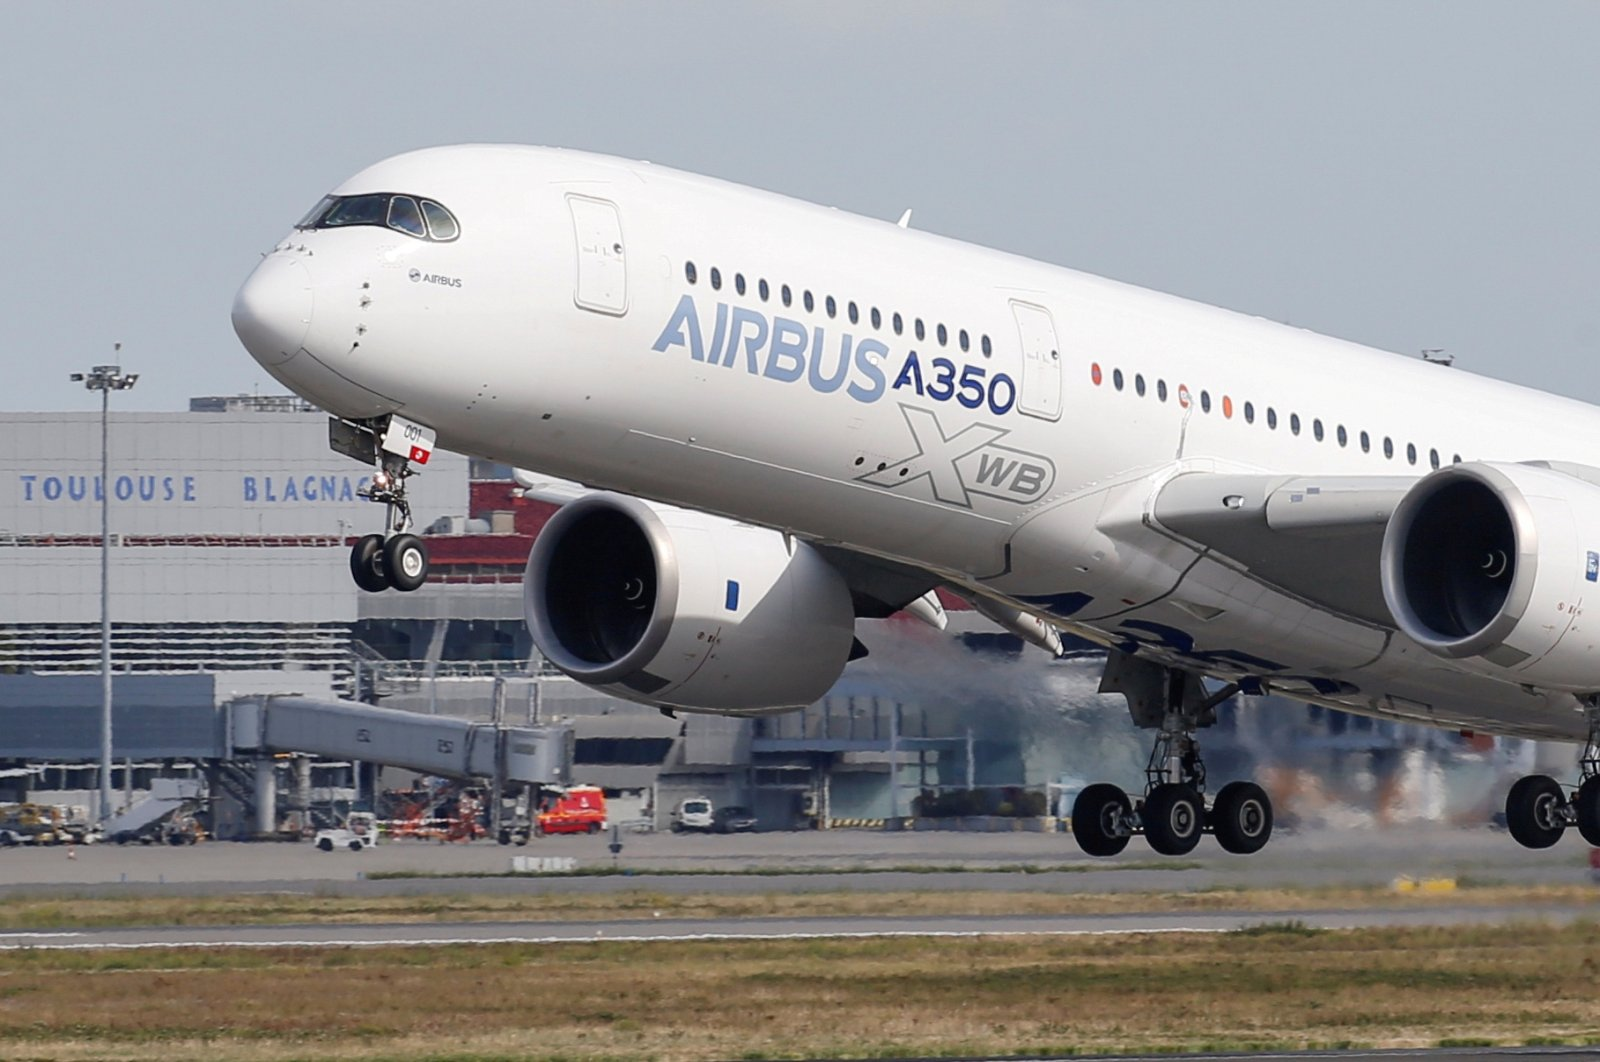 An Airbus A350 takes off at the aircraft builder's headquarters in Colomiers near Toulouse, France, Sept. 27, 2019. (Reuters Photo)